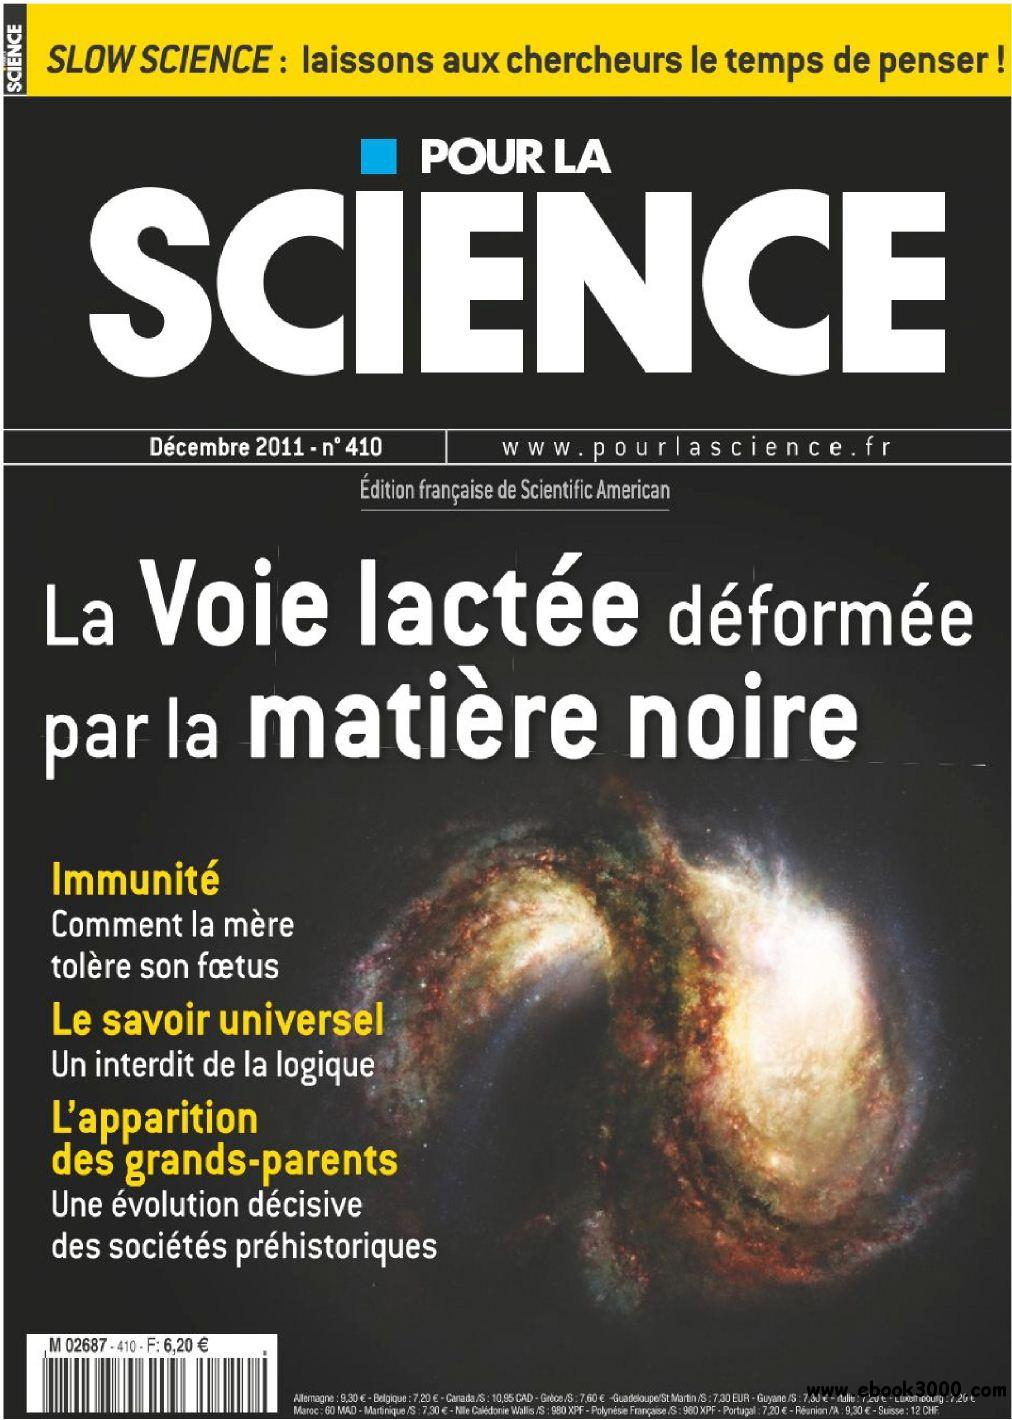 Pour La Science N 410 Decembre 2011 free download